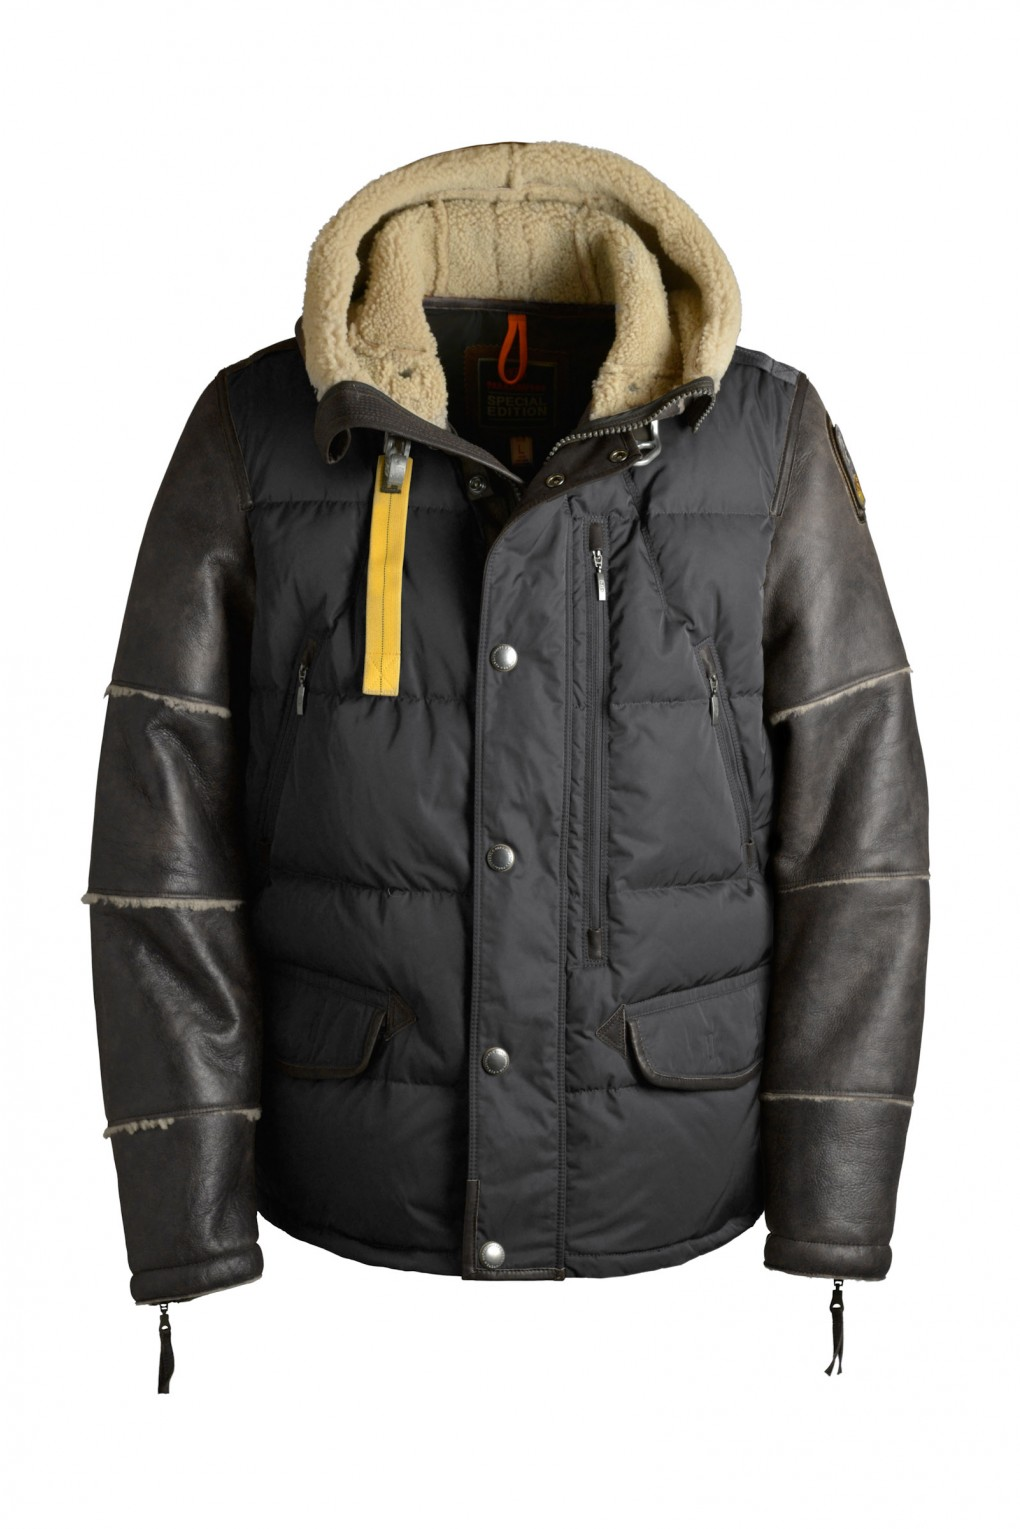 parajumpers GAMBLE SPECIAL man outerwear Asphalt